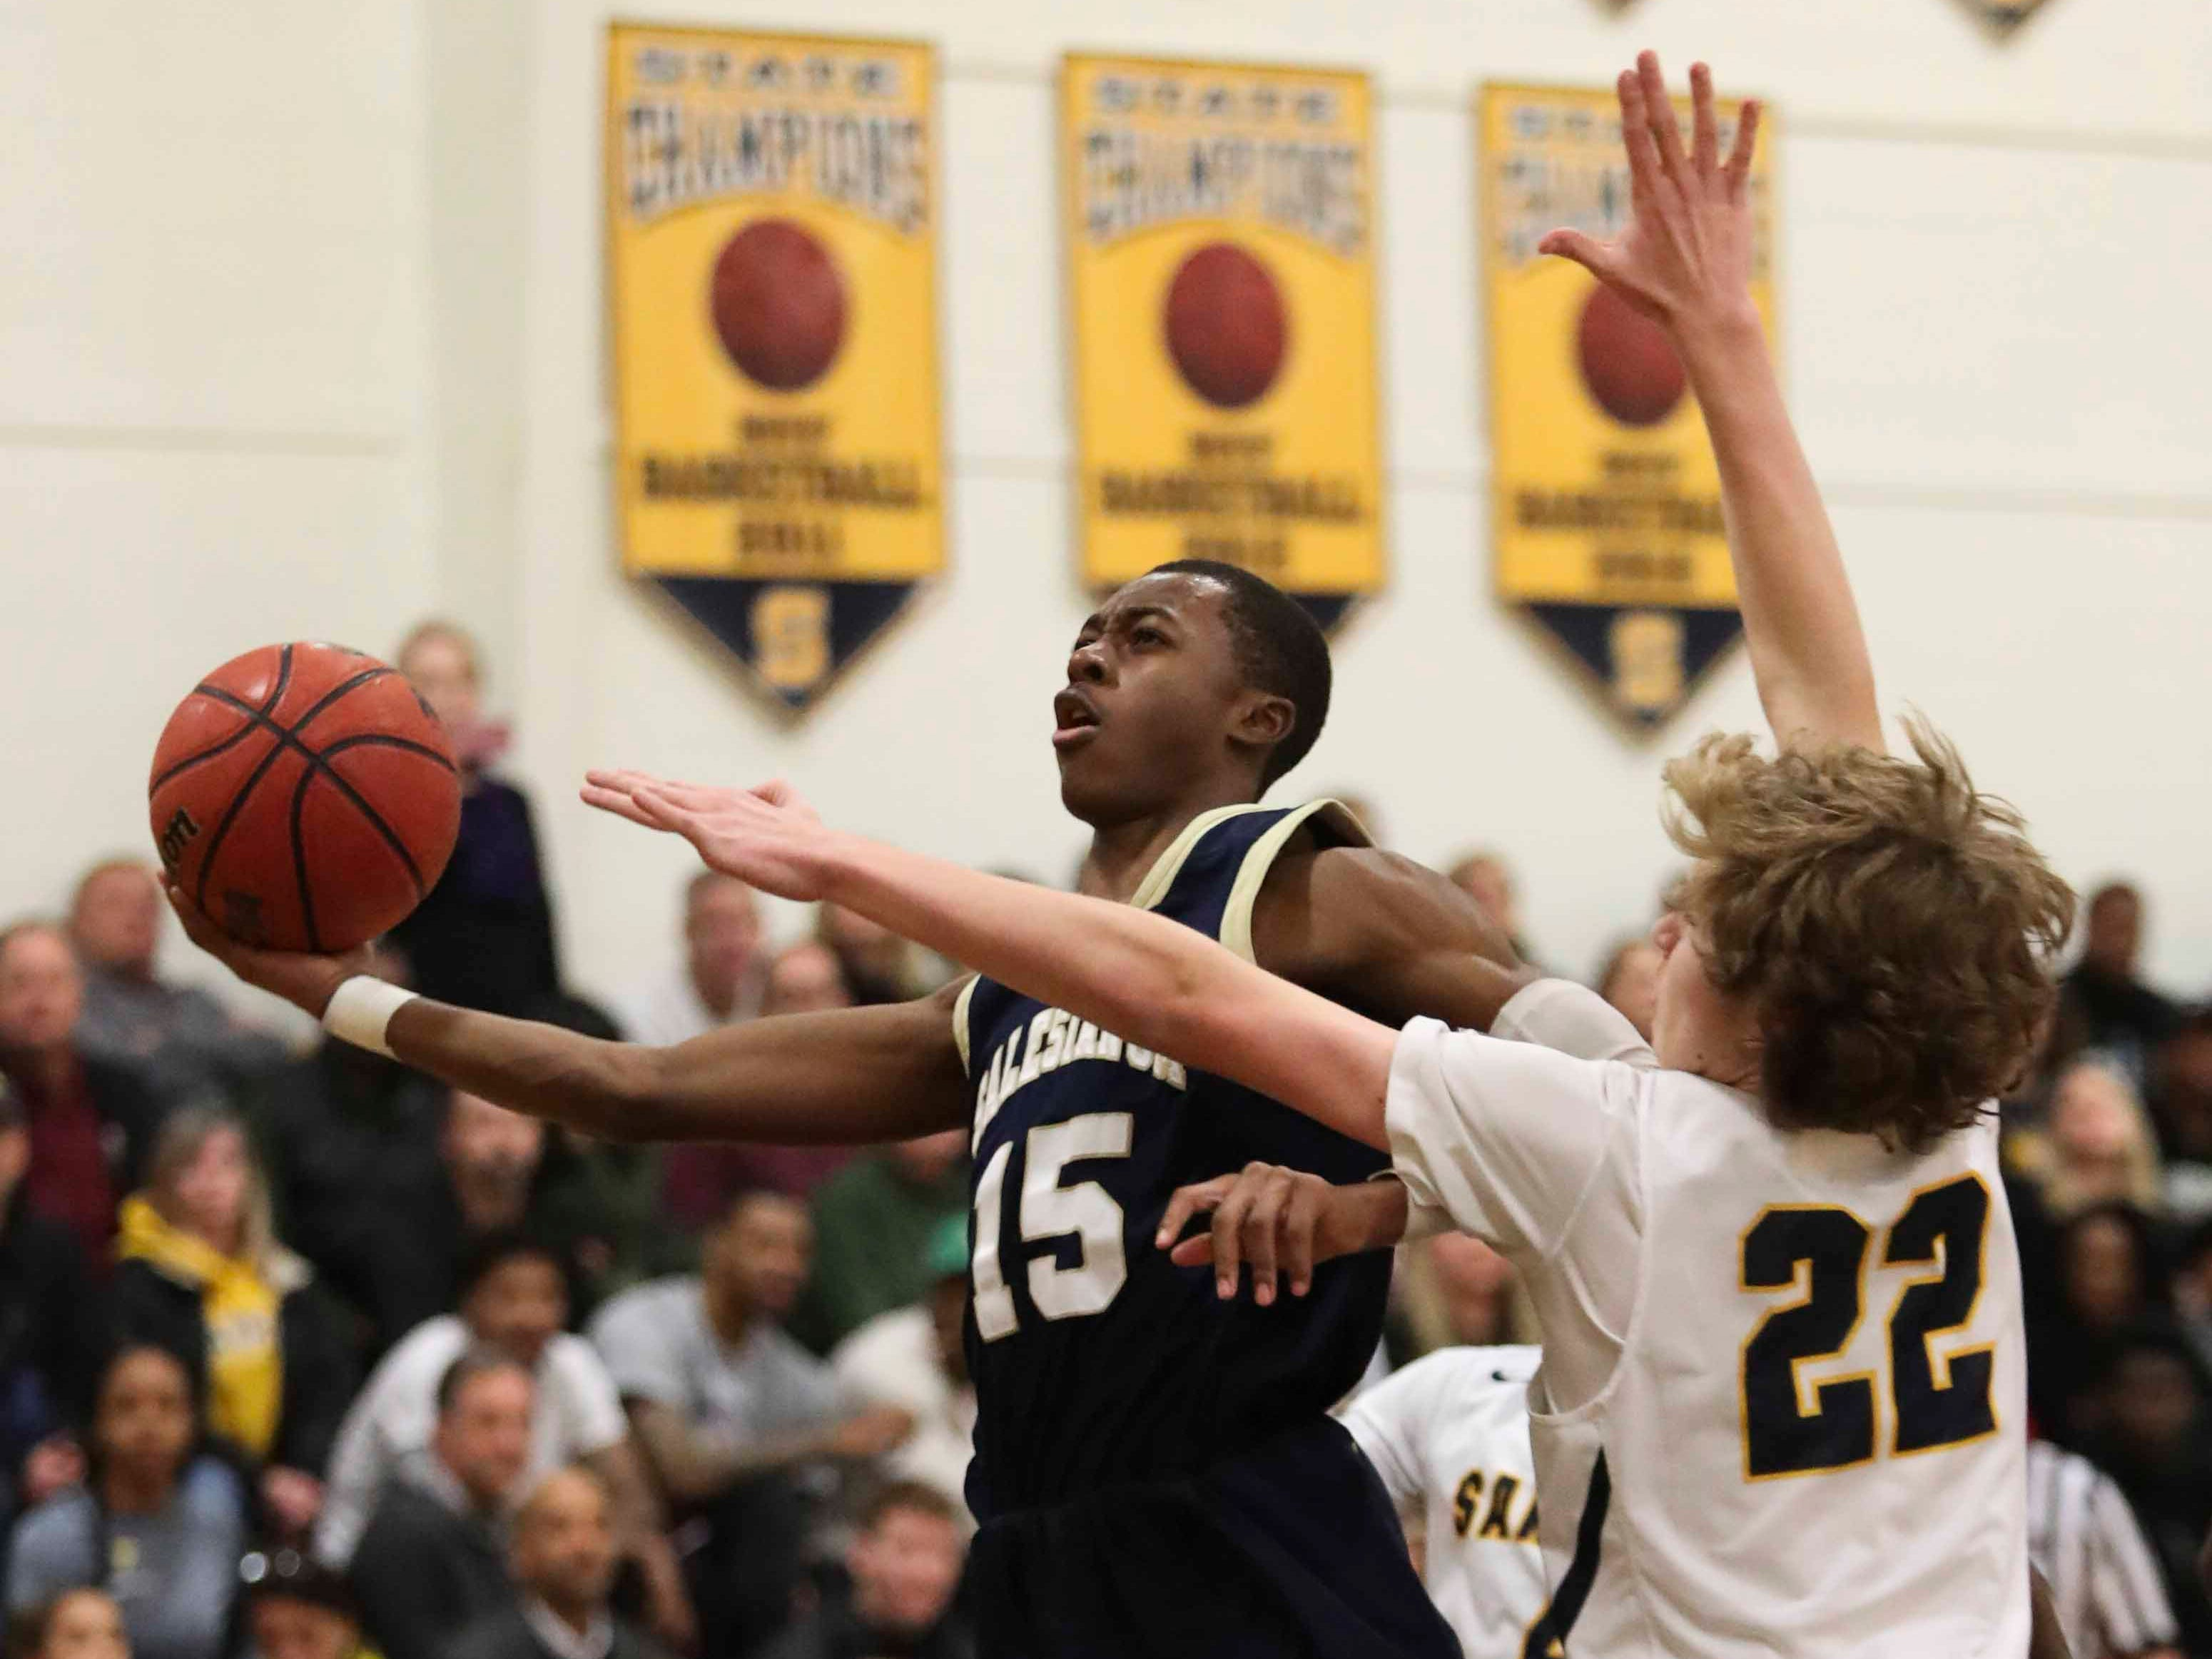 Salesianum's Rasheed Caulk goes to the basket against Sanford's Carter Ruby in the Warriors' 65-47 win at home Friday.